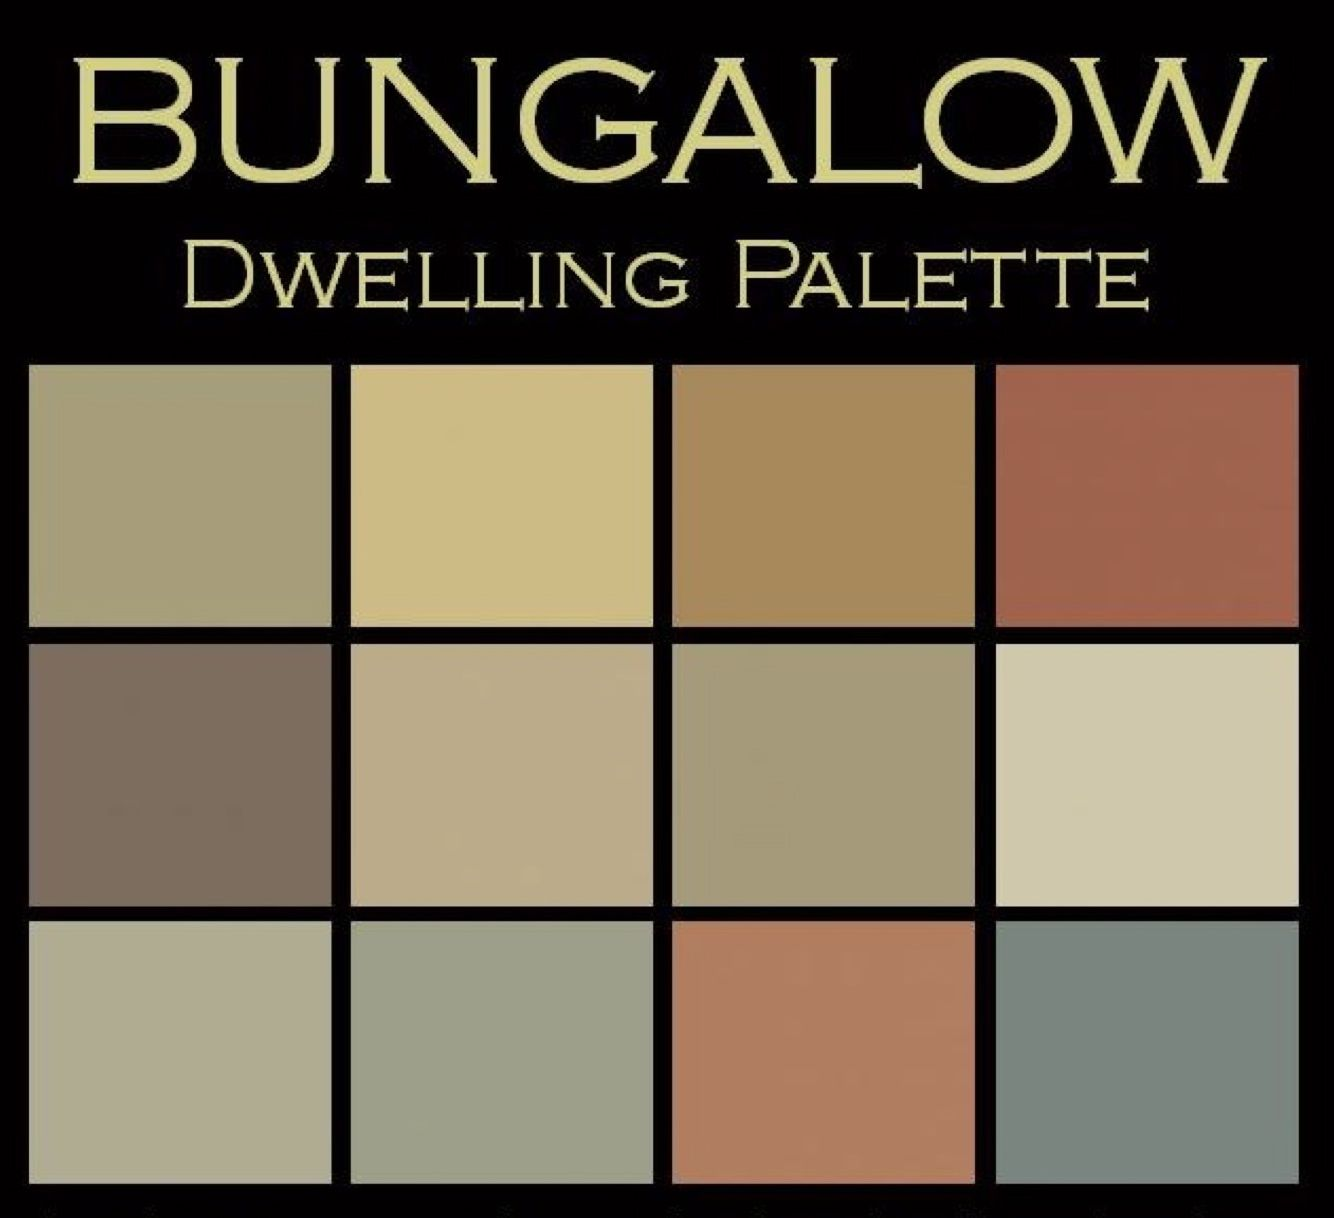 Bungalow Dwelling Palette The Bungalow Paint Color